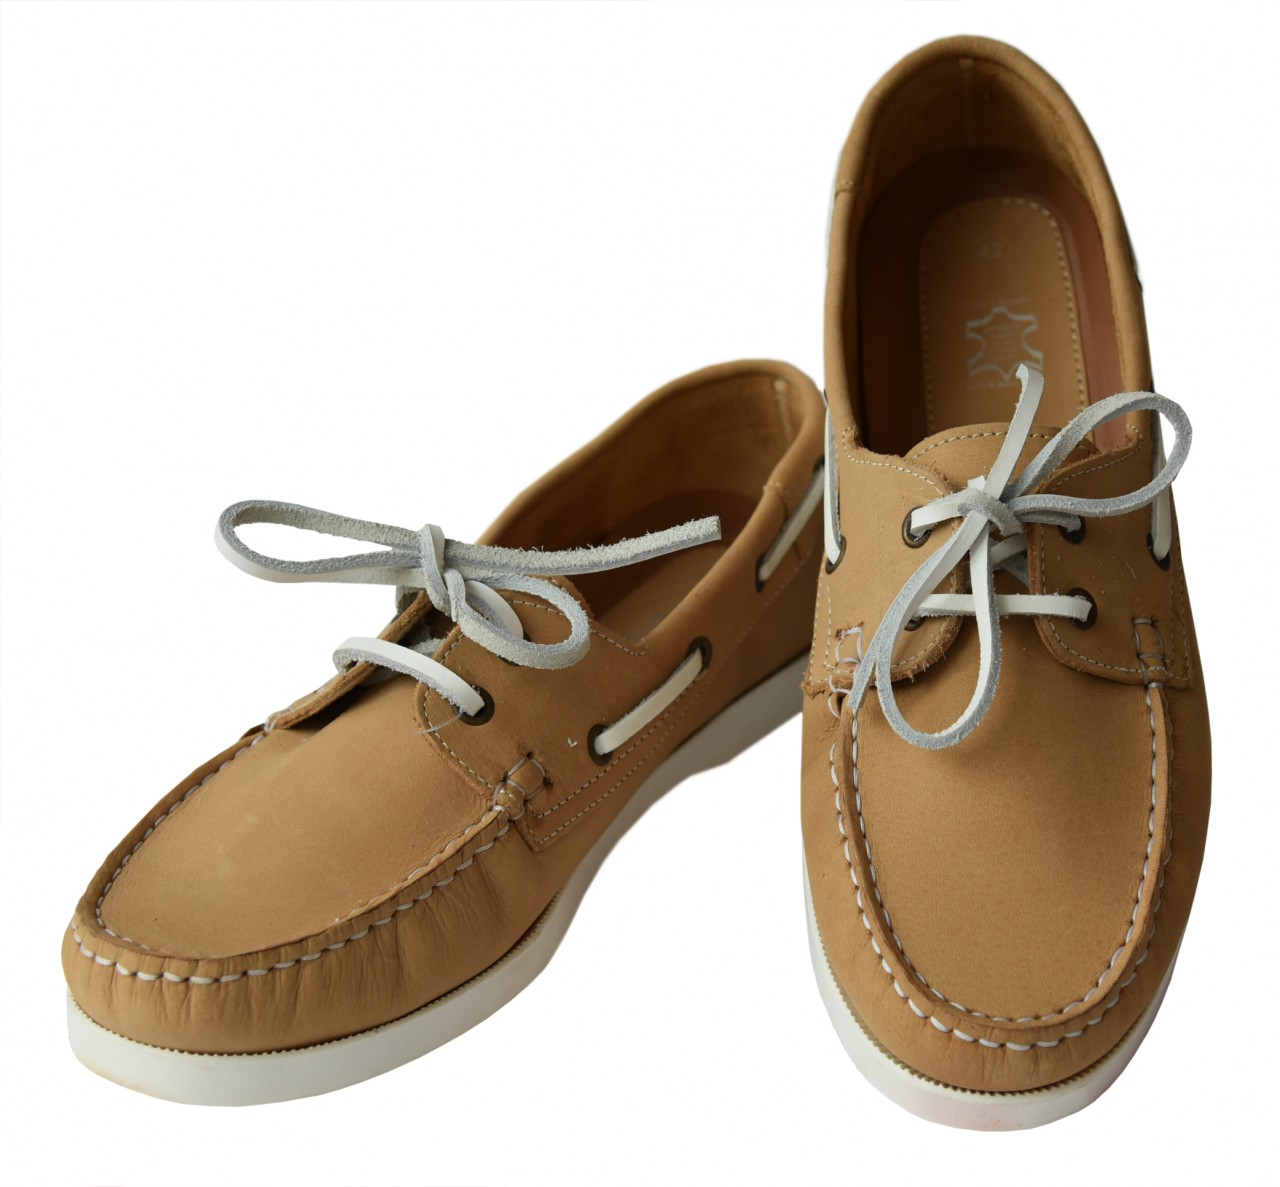 skippers men All sizes and all colors available sizes 8, 9, 10, 11, 12, 13, 14 made from eucalyptus tree fiber for a cool, breathable and silky feel for half sizes, round up.